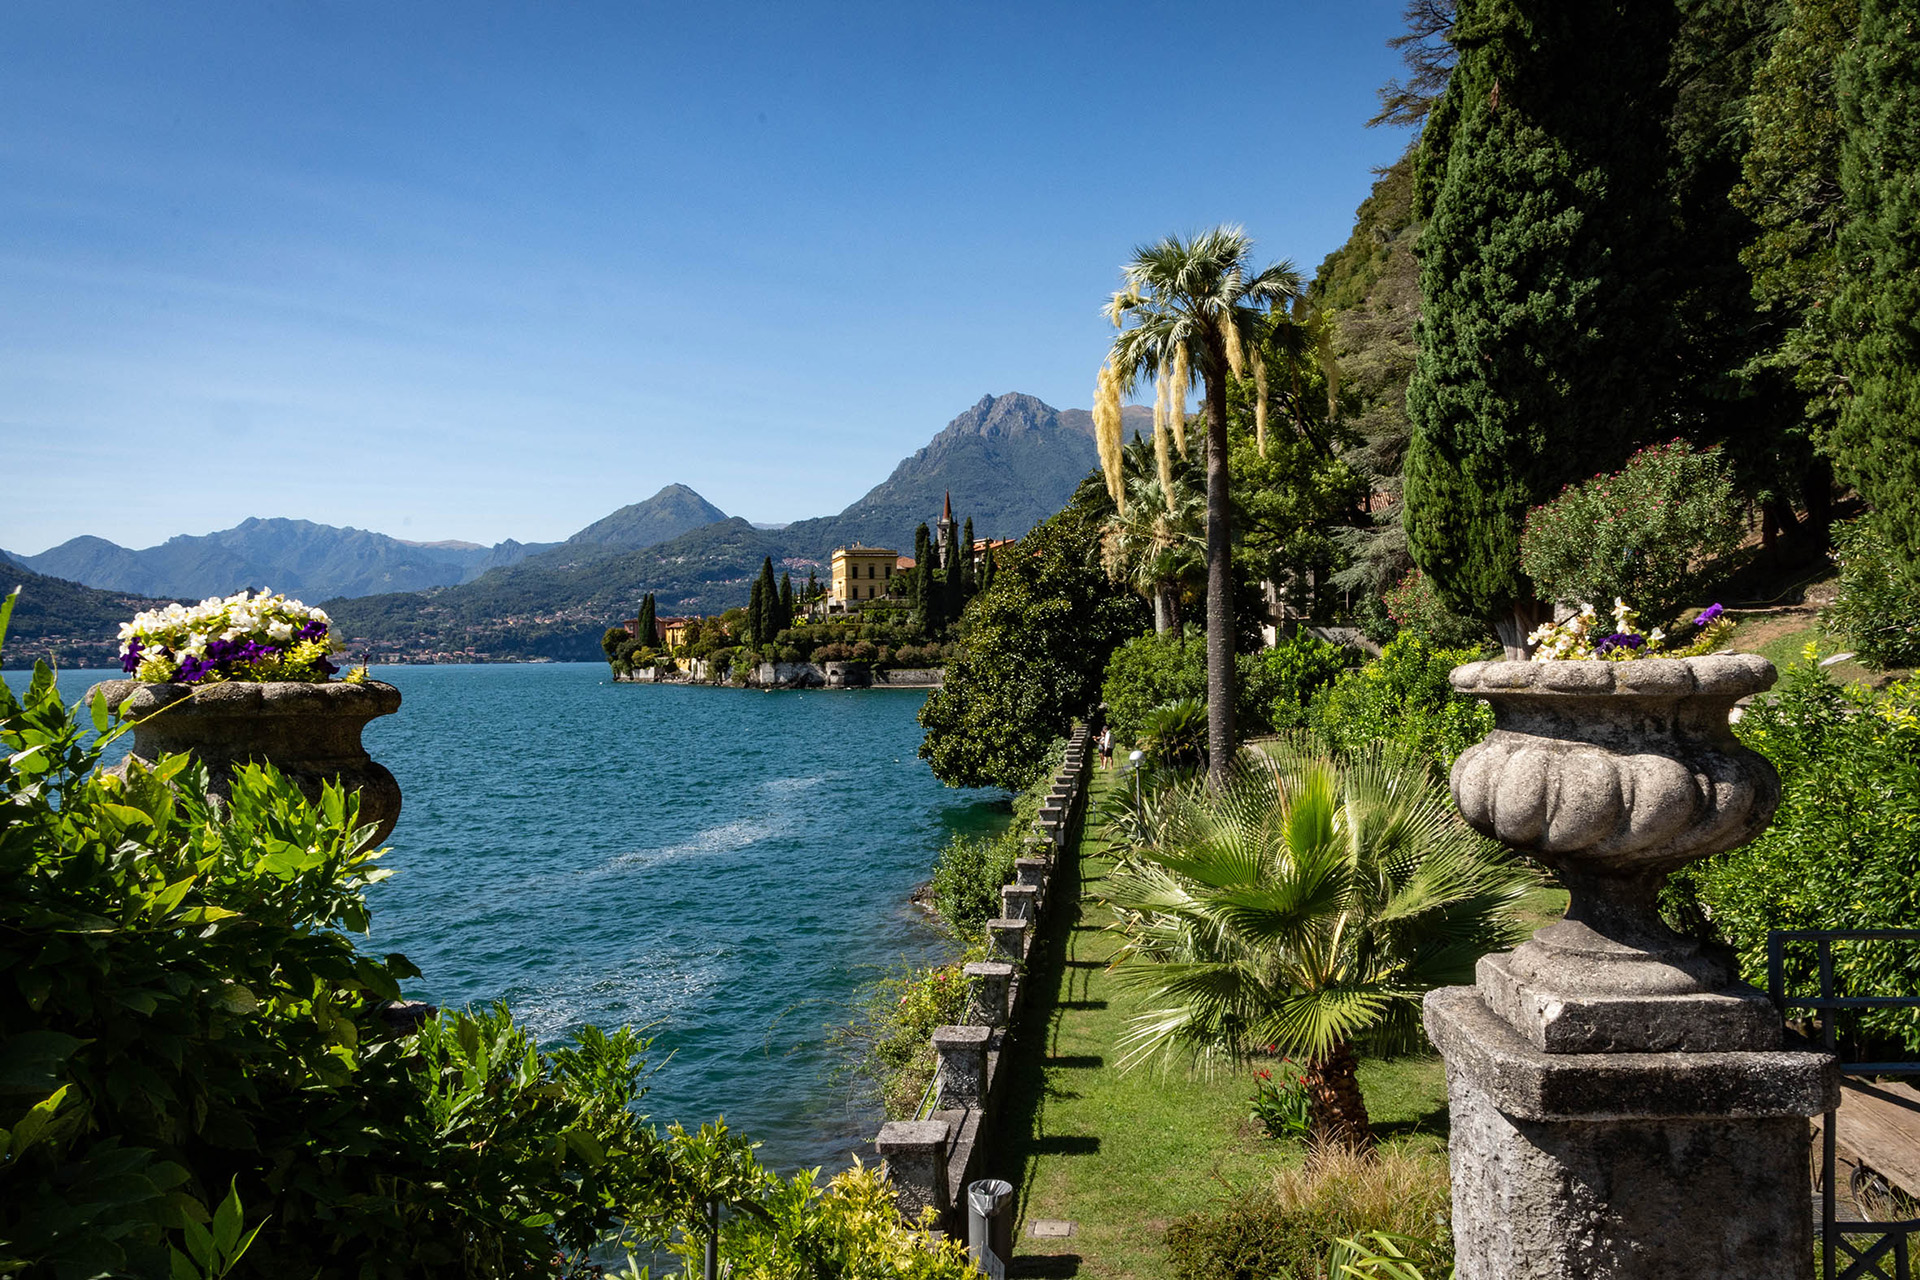 The botanical gardens of the Villa Monastero in Varenna, looking north back towards the lakeside village.